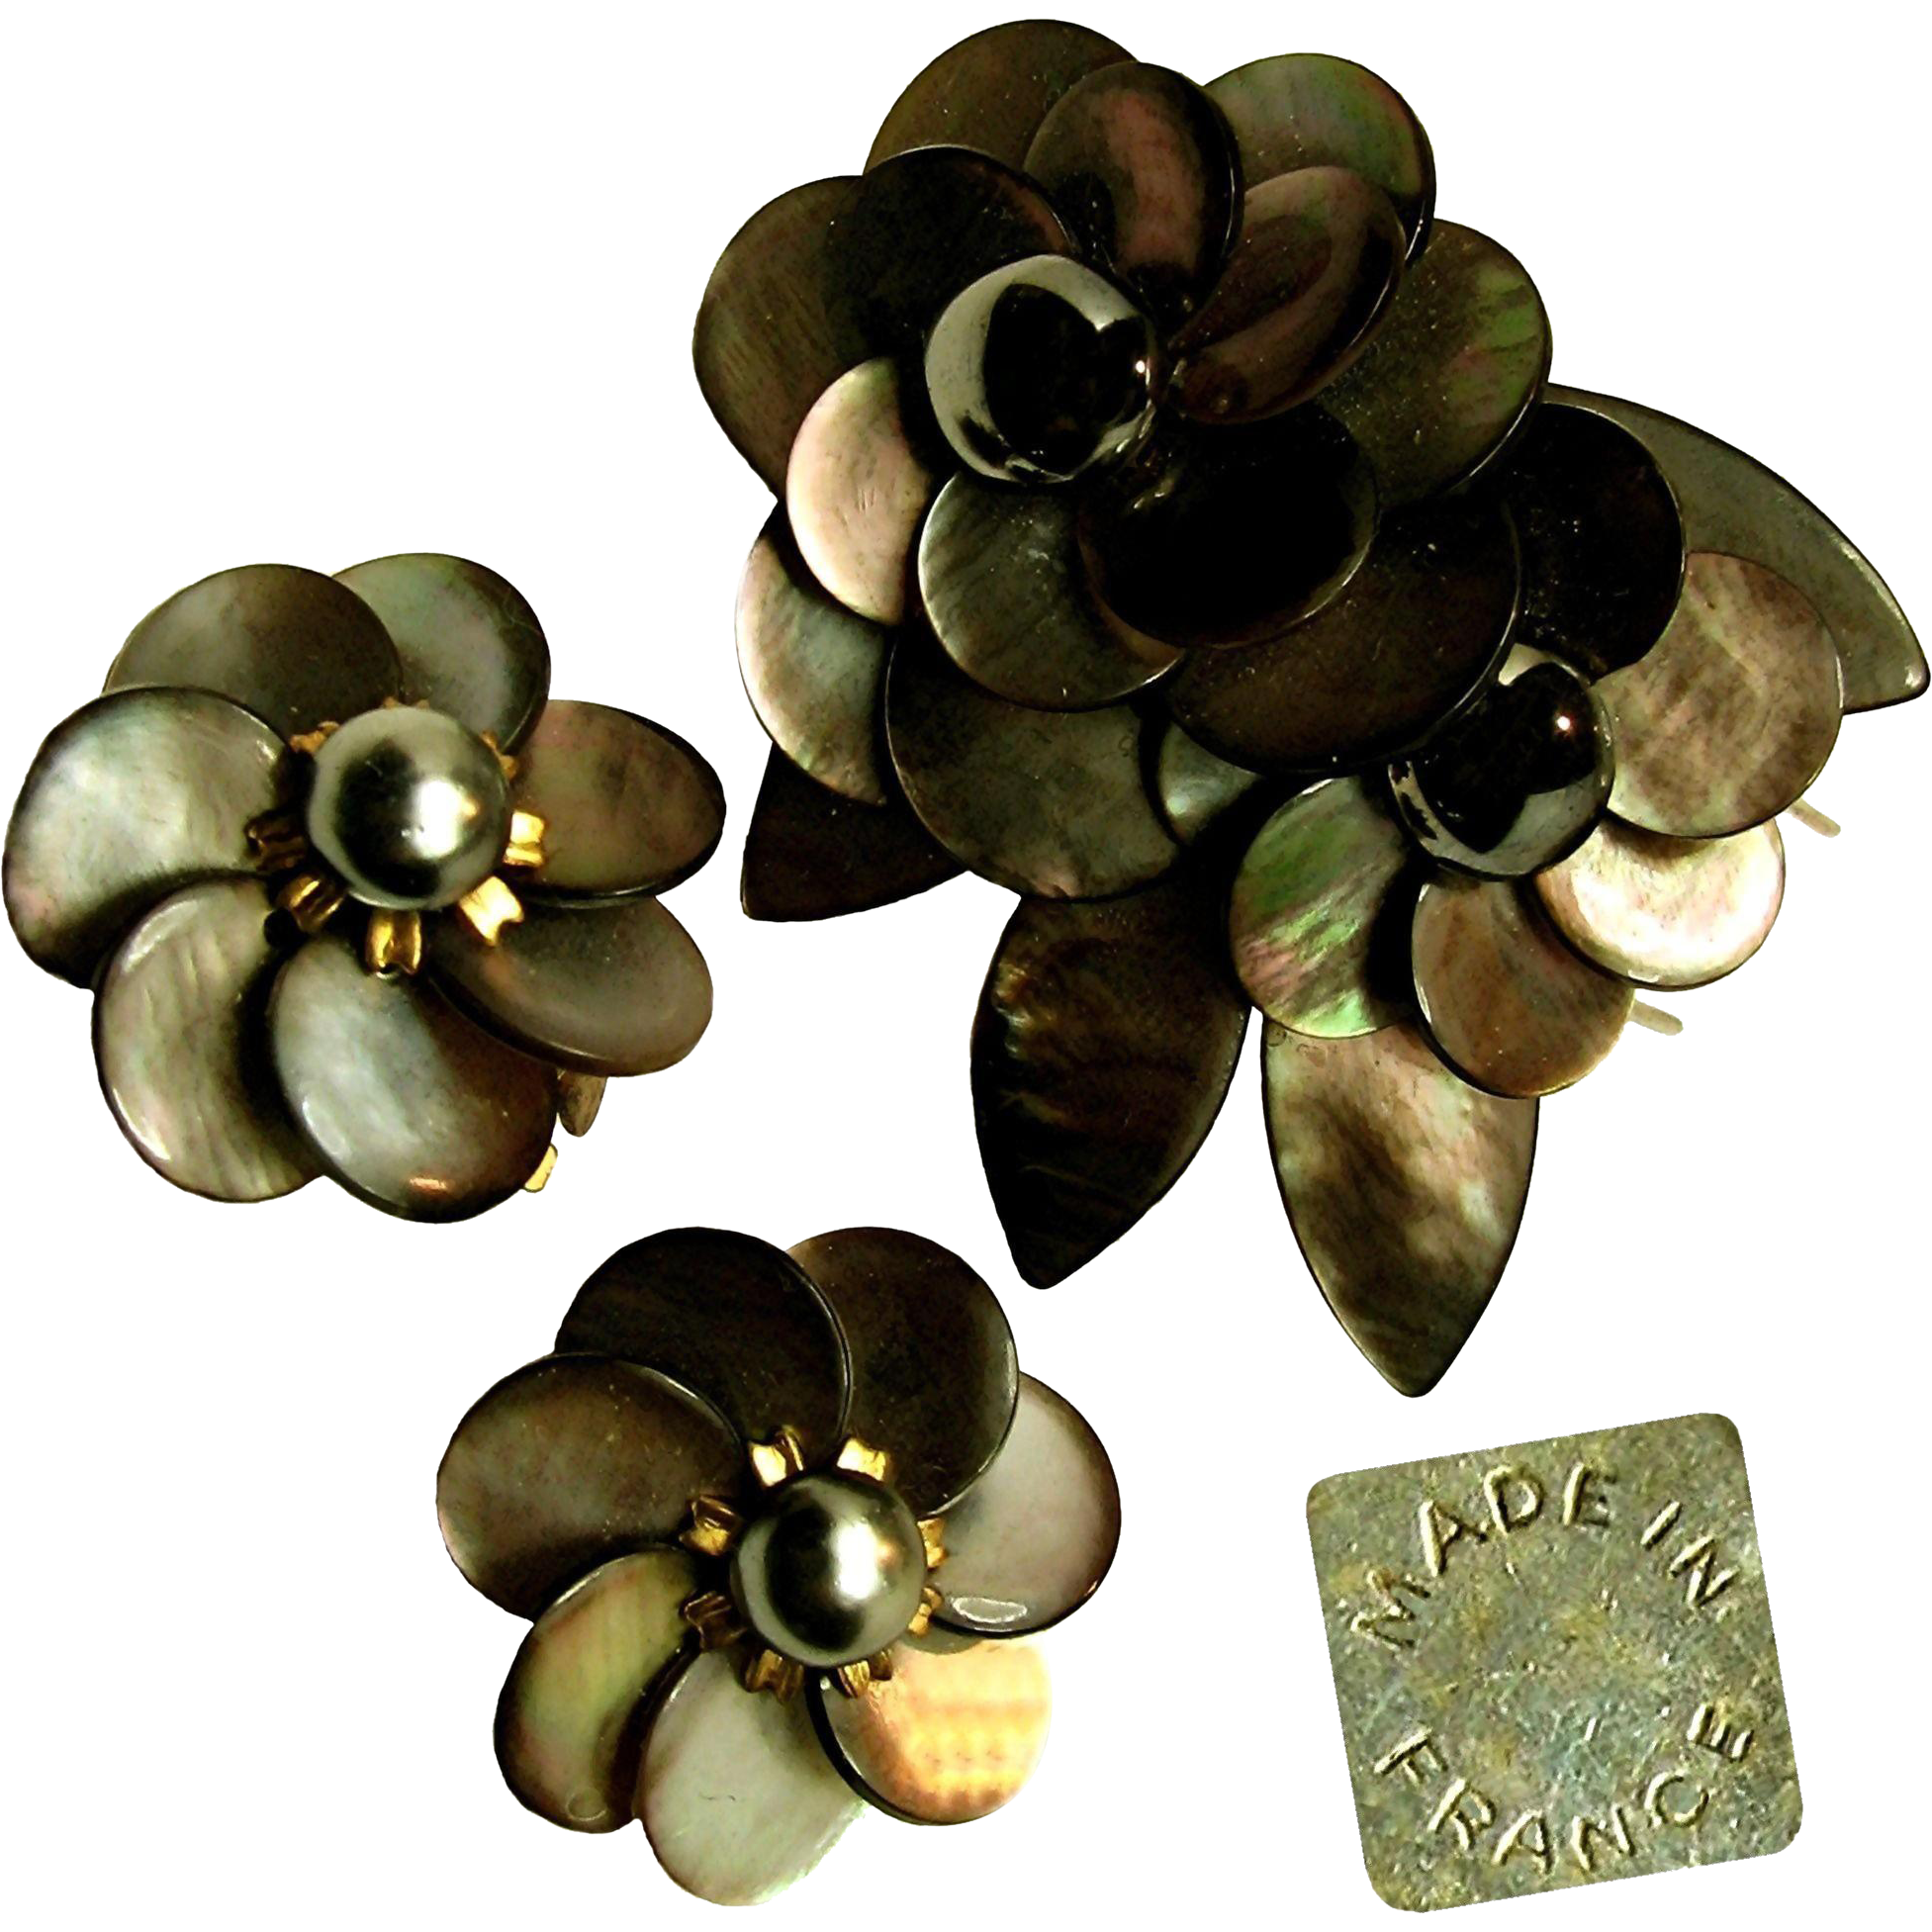 Rare Vintage French Floral Pin Clip Set c.1940's - Sultry Exquisite Sable Abalone